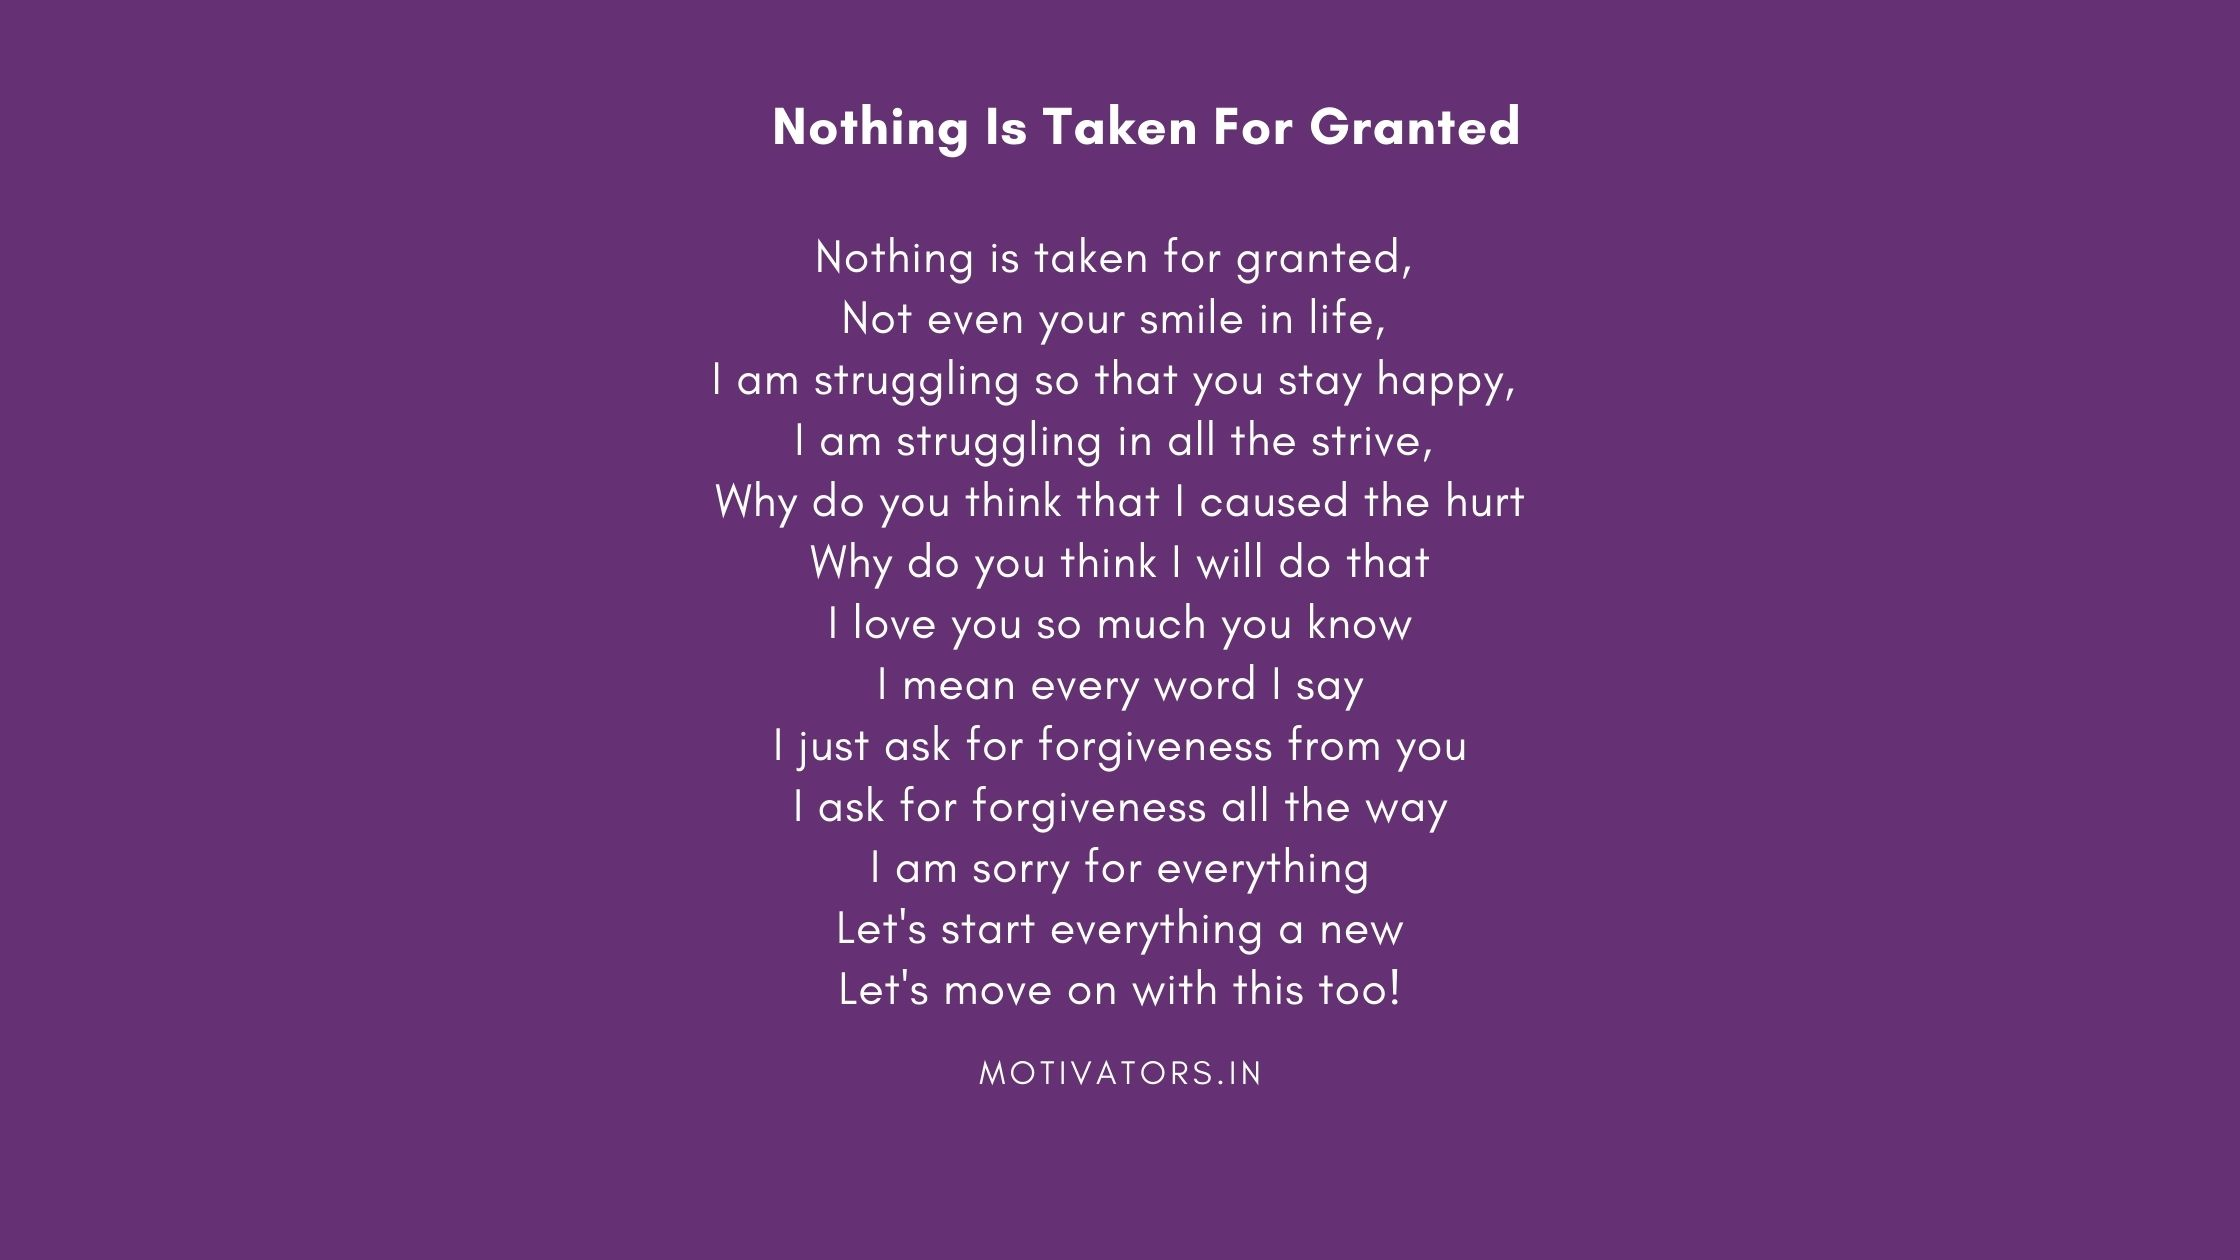 Nothing Is Taken For Granted